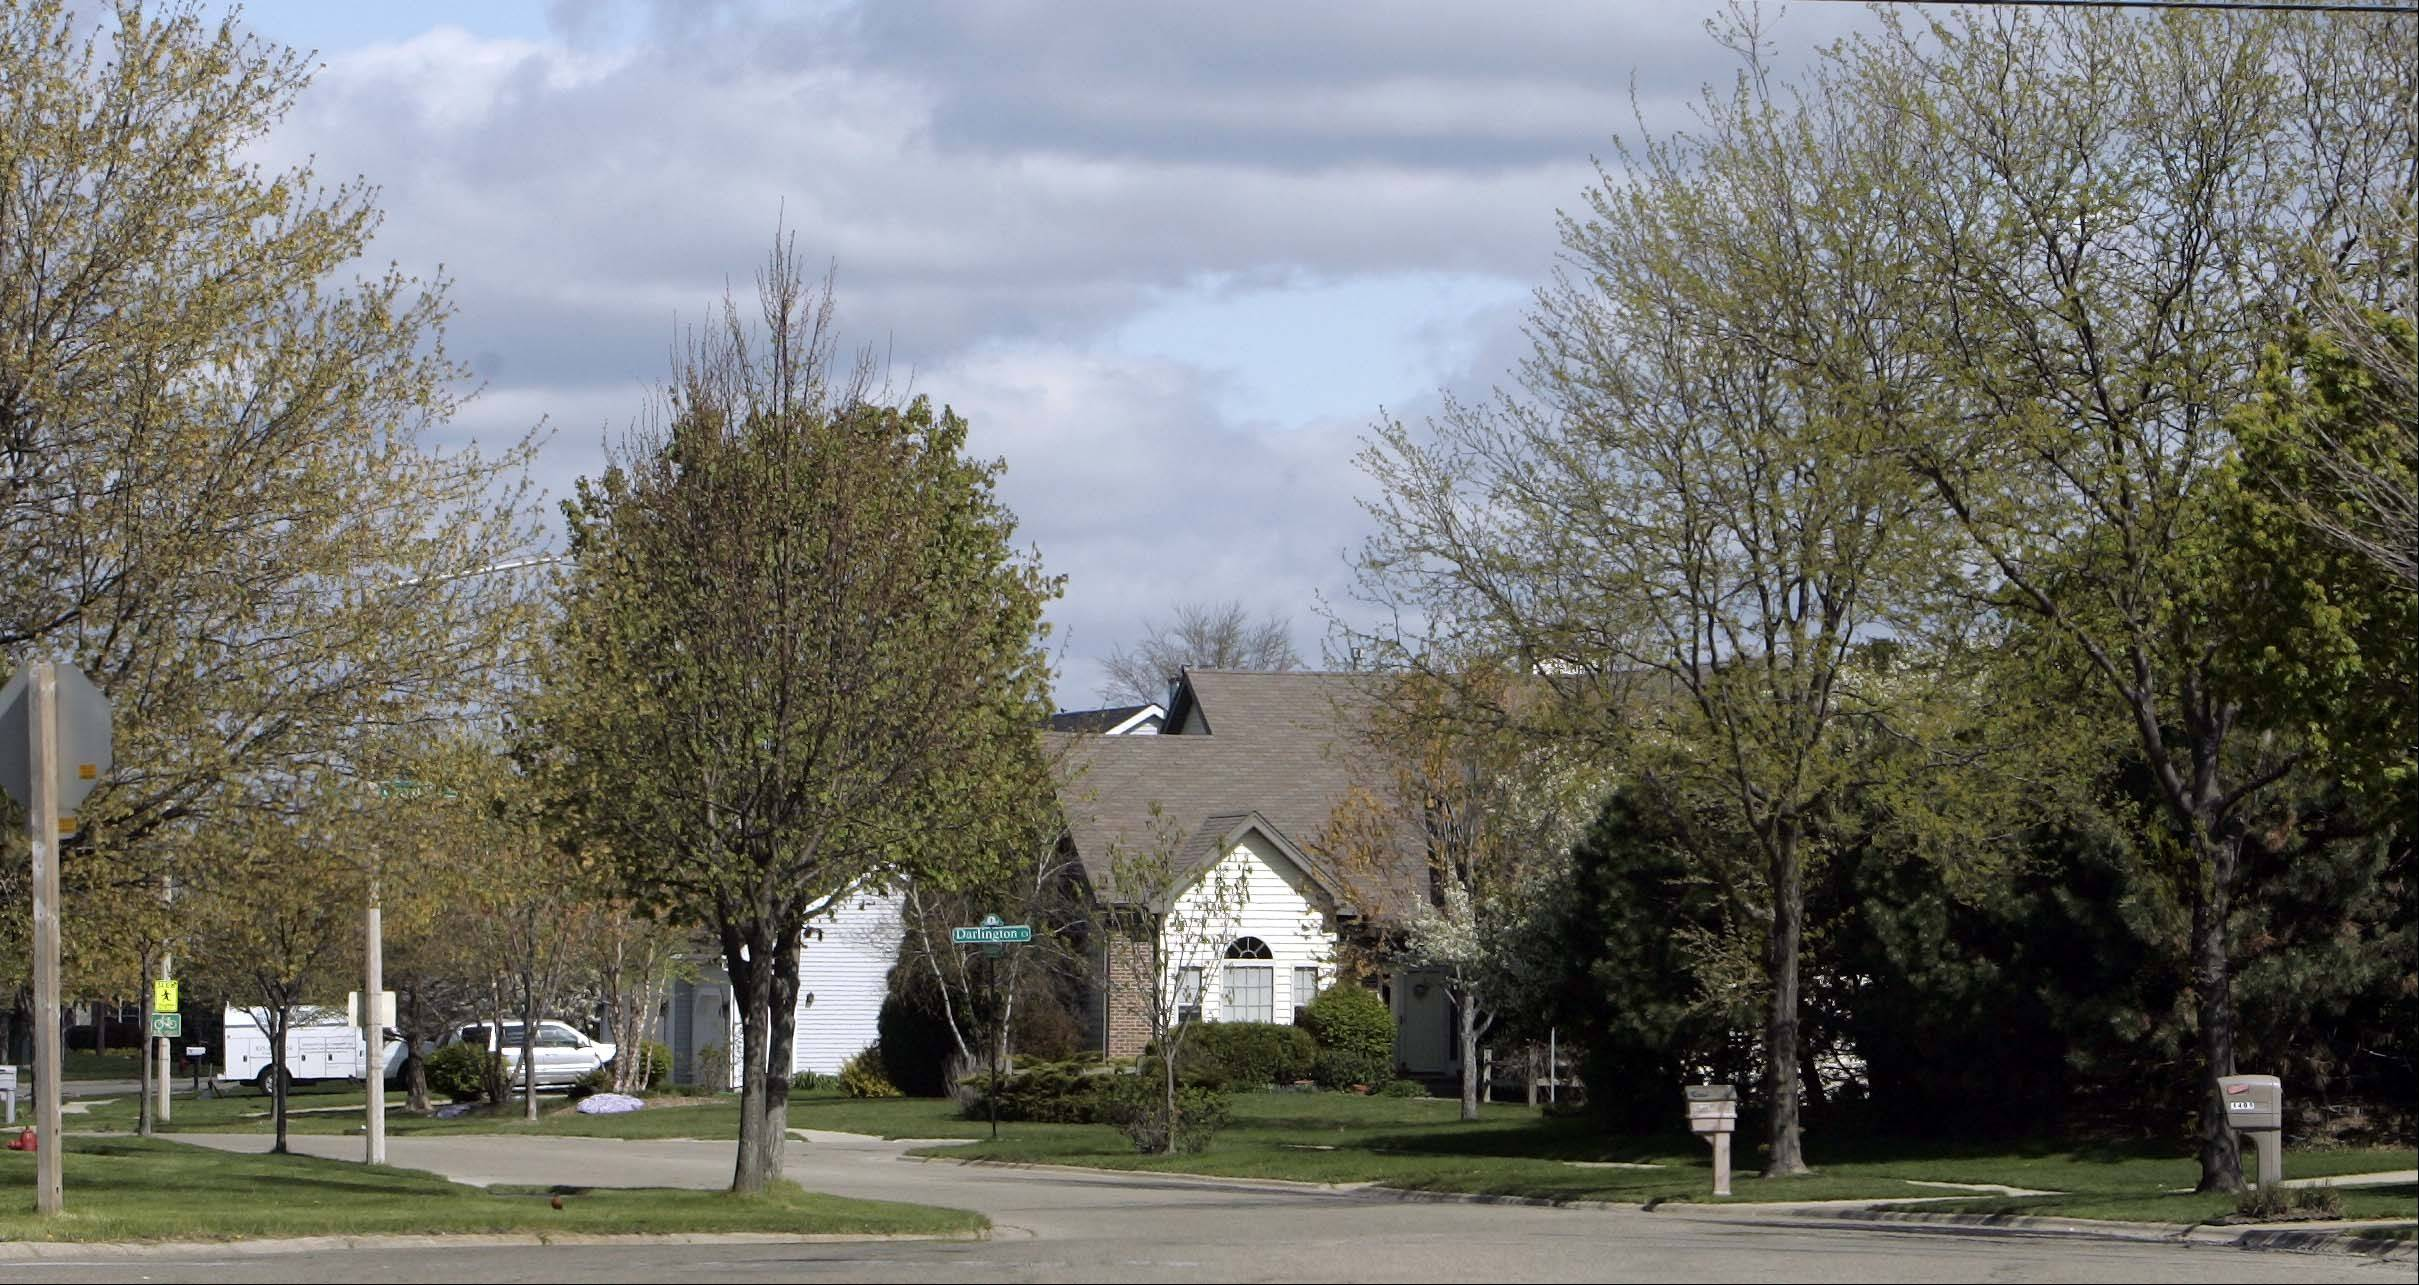 Stonegate Road is one of the major streets that meander through Algonquin's Tunbridge neighborhood.